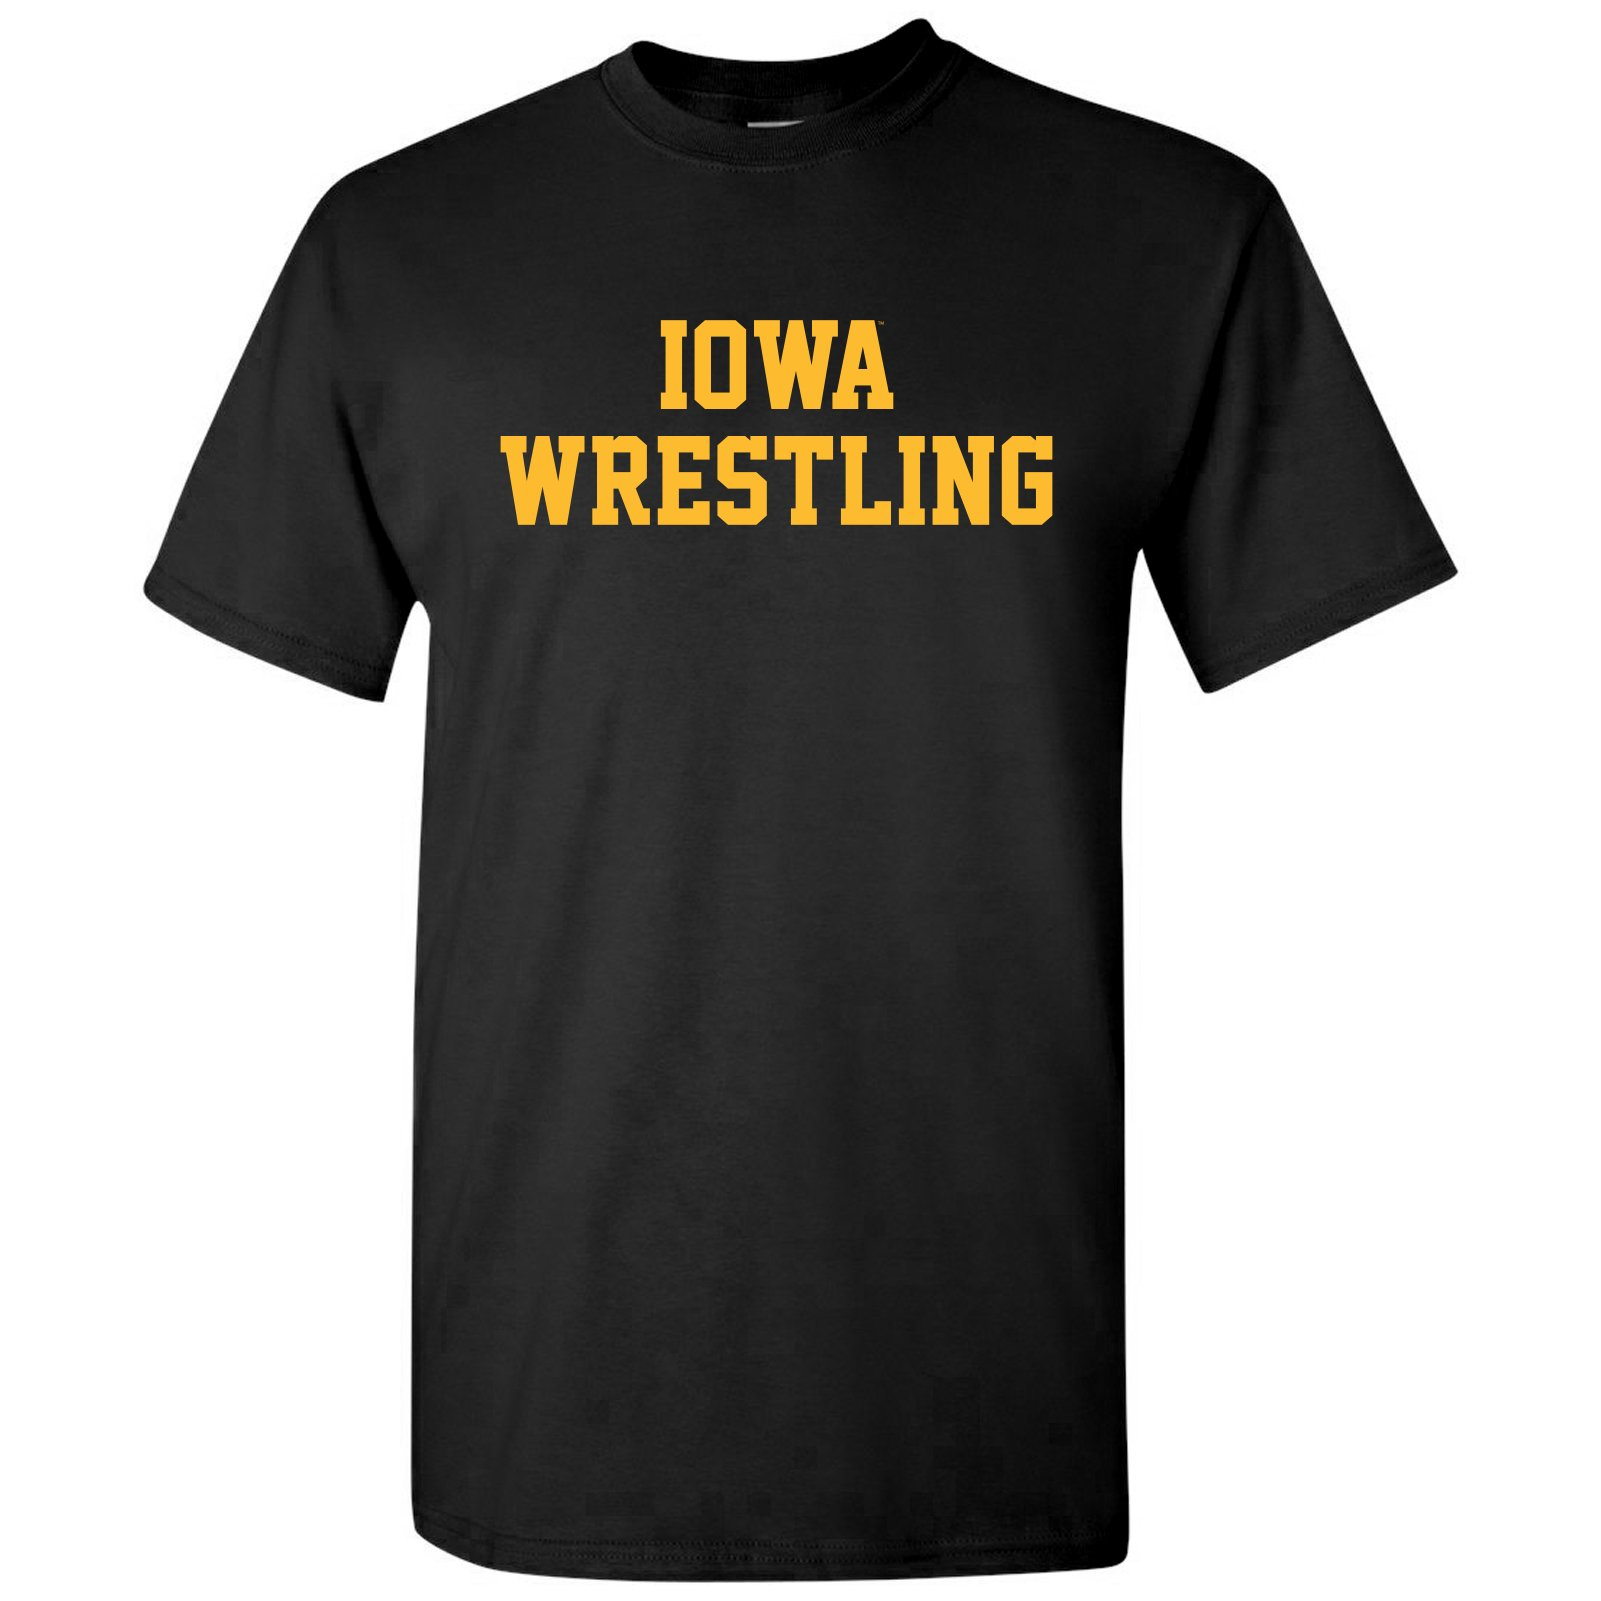 Iowa Hawkeyes Block Iowa Wrestling T-Shirt - Large - Black by UGP Campus Apparel